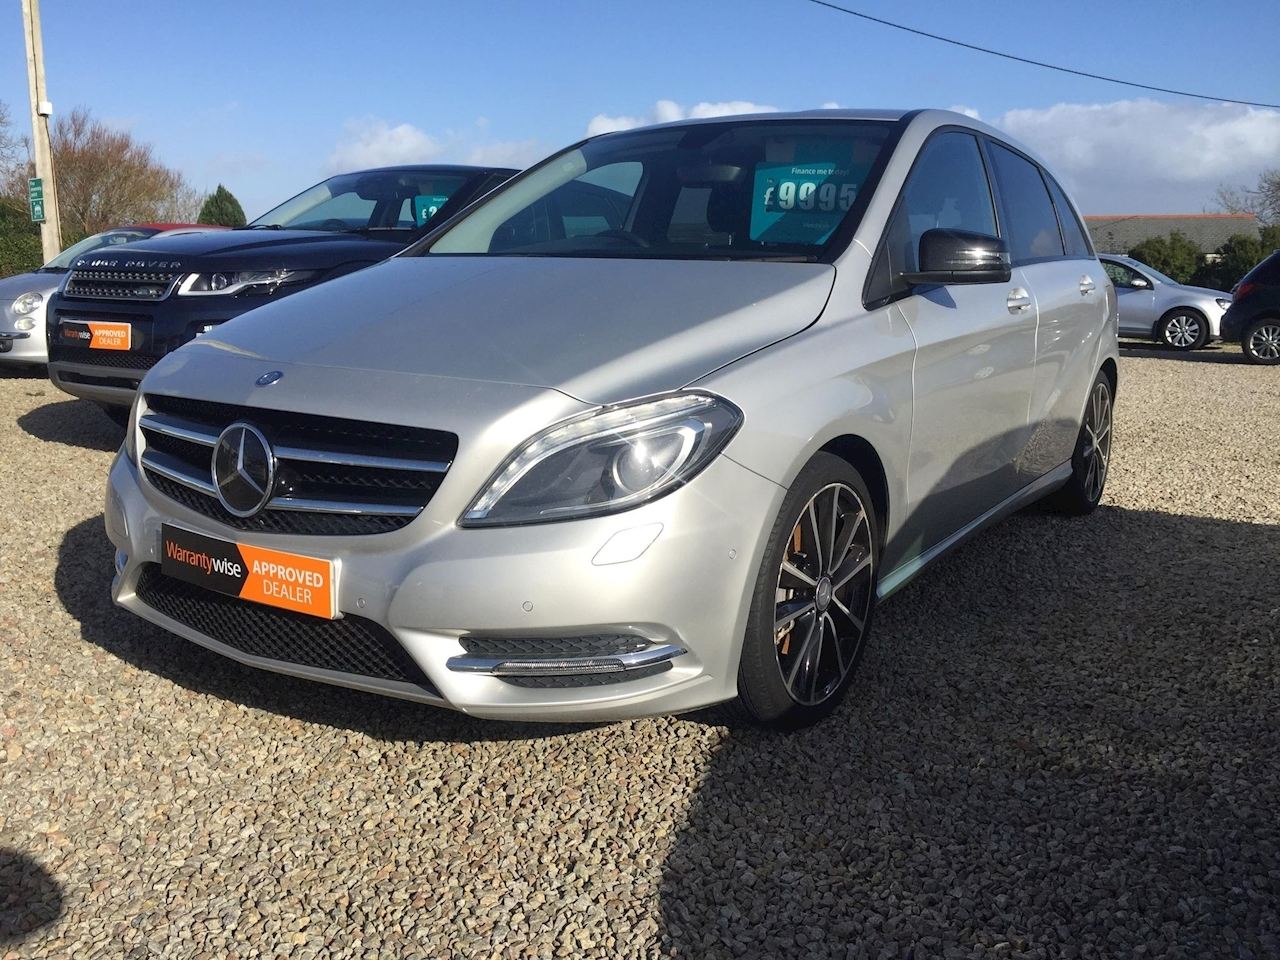 Mercedes-Benz B Class Sport Hatchback 1.5 Manual Diesel